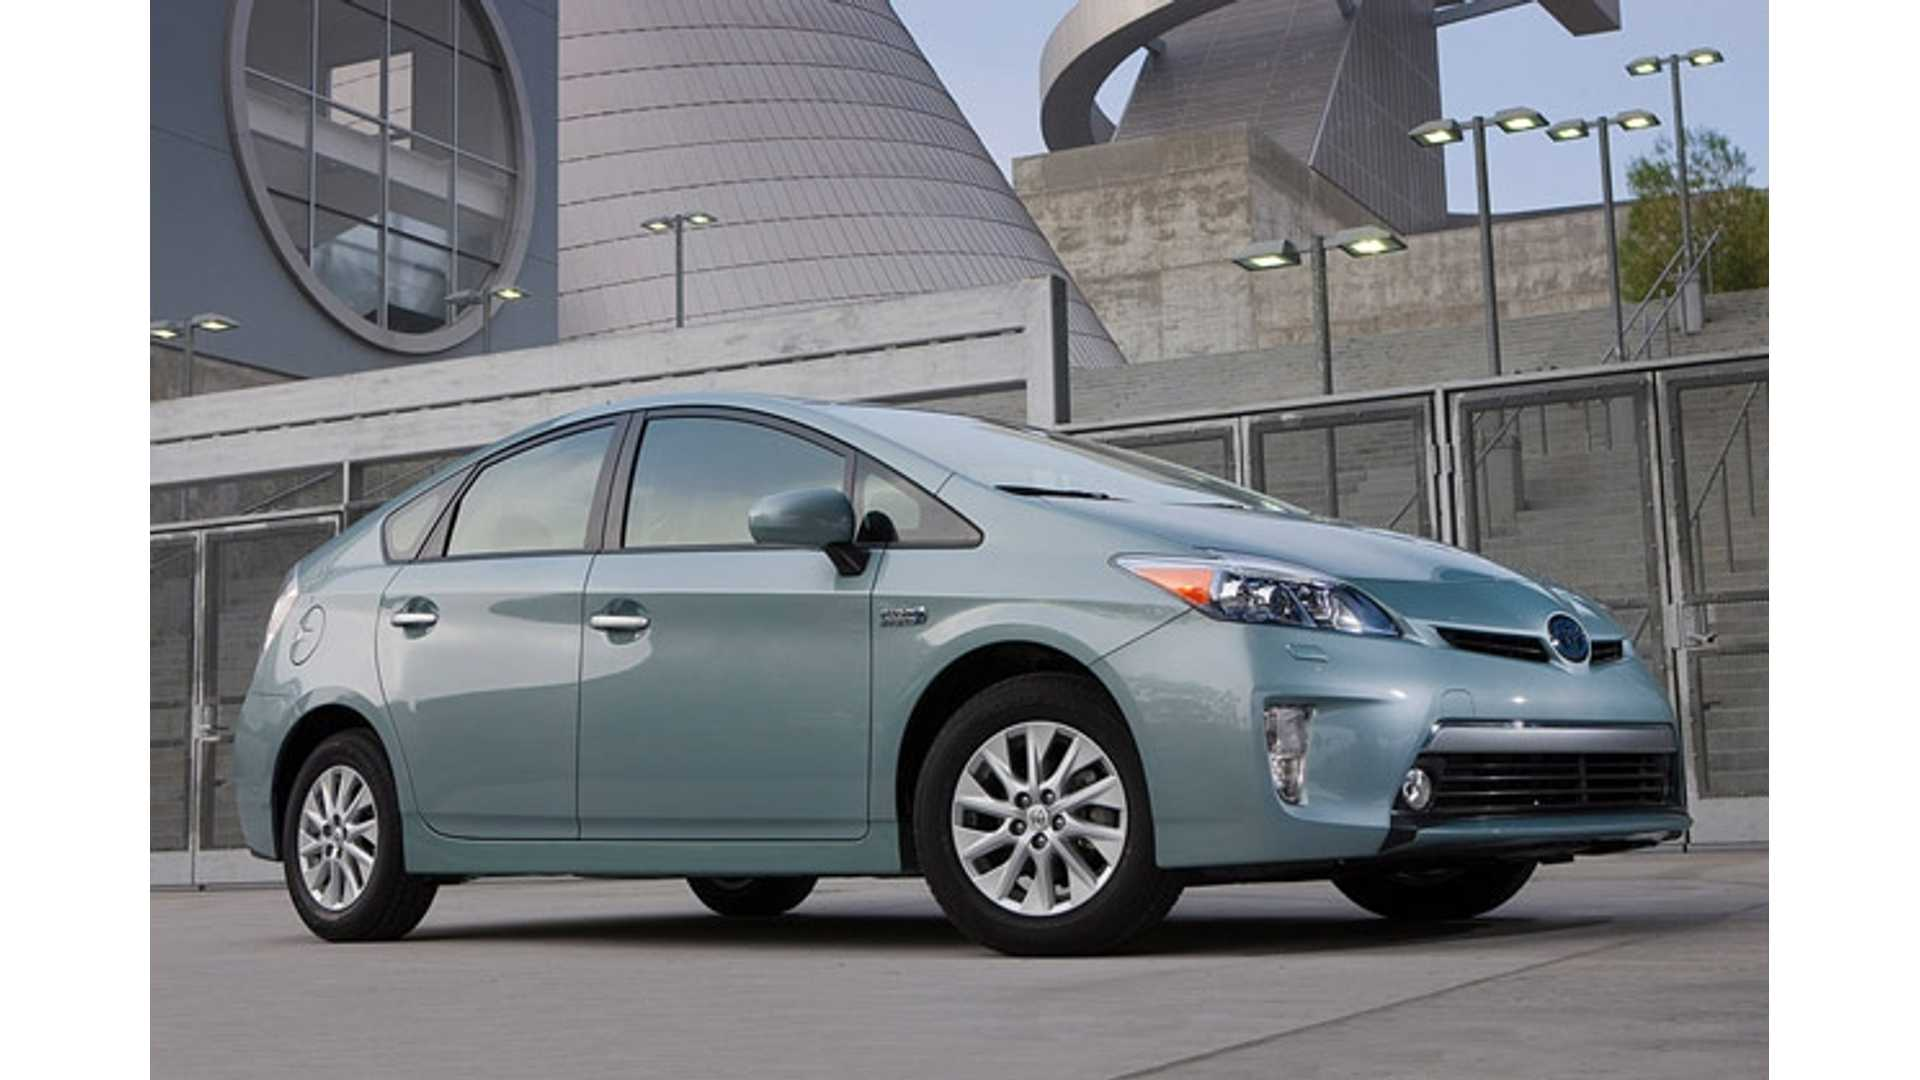 55 Next Gen Toyota Prius Plug In Hybrid To Get More Electric Range